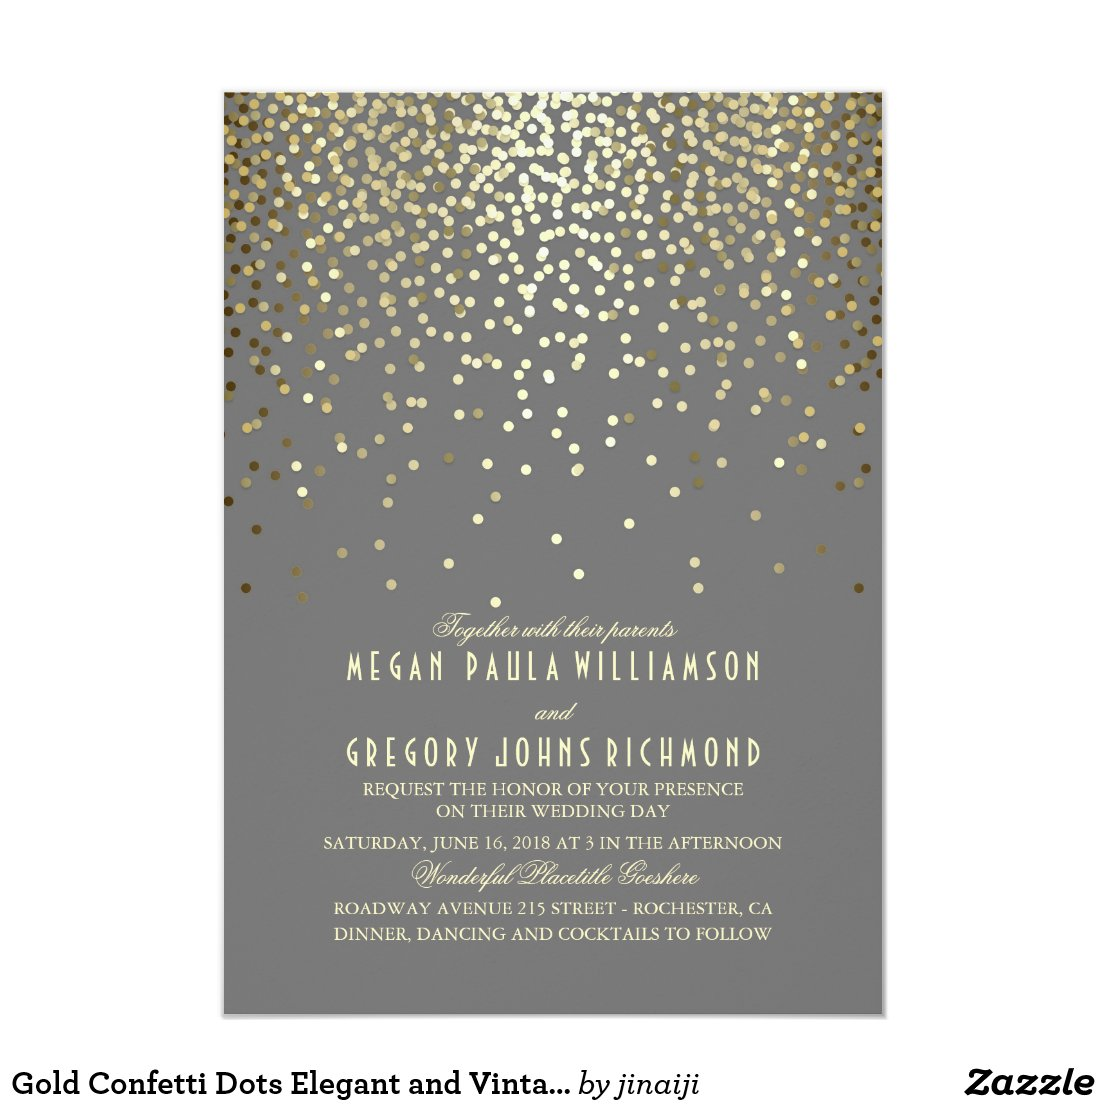 Gold Confetti Dots Elegant and Vintage Wedding Invitation